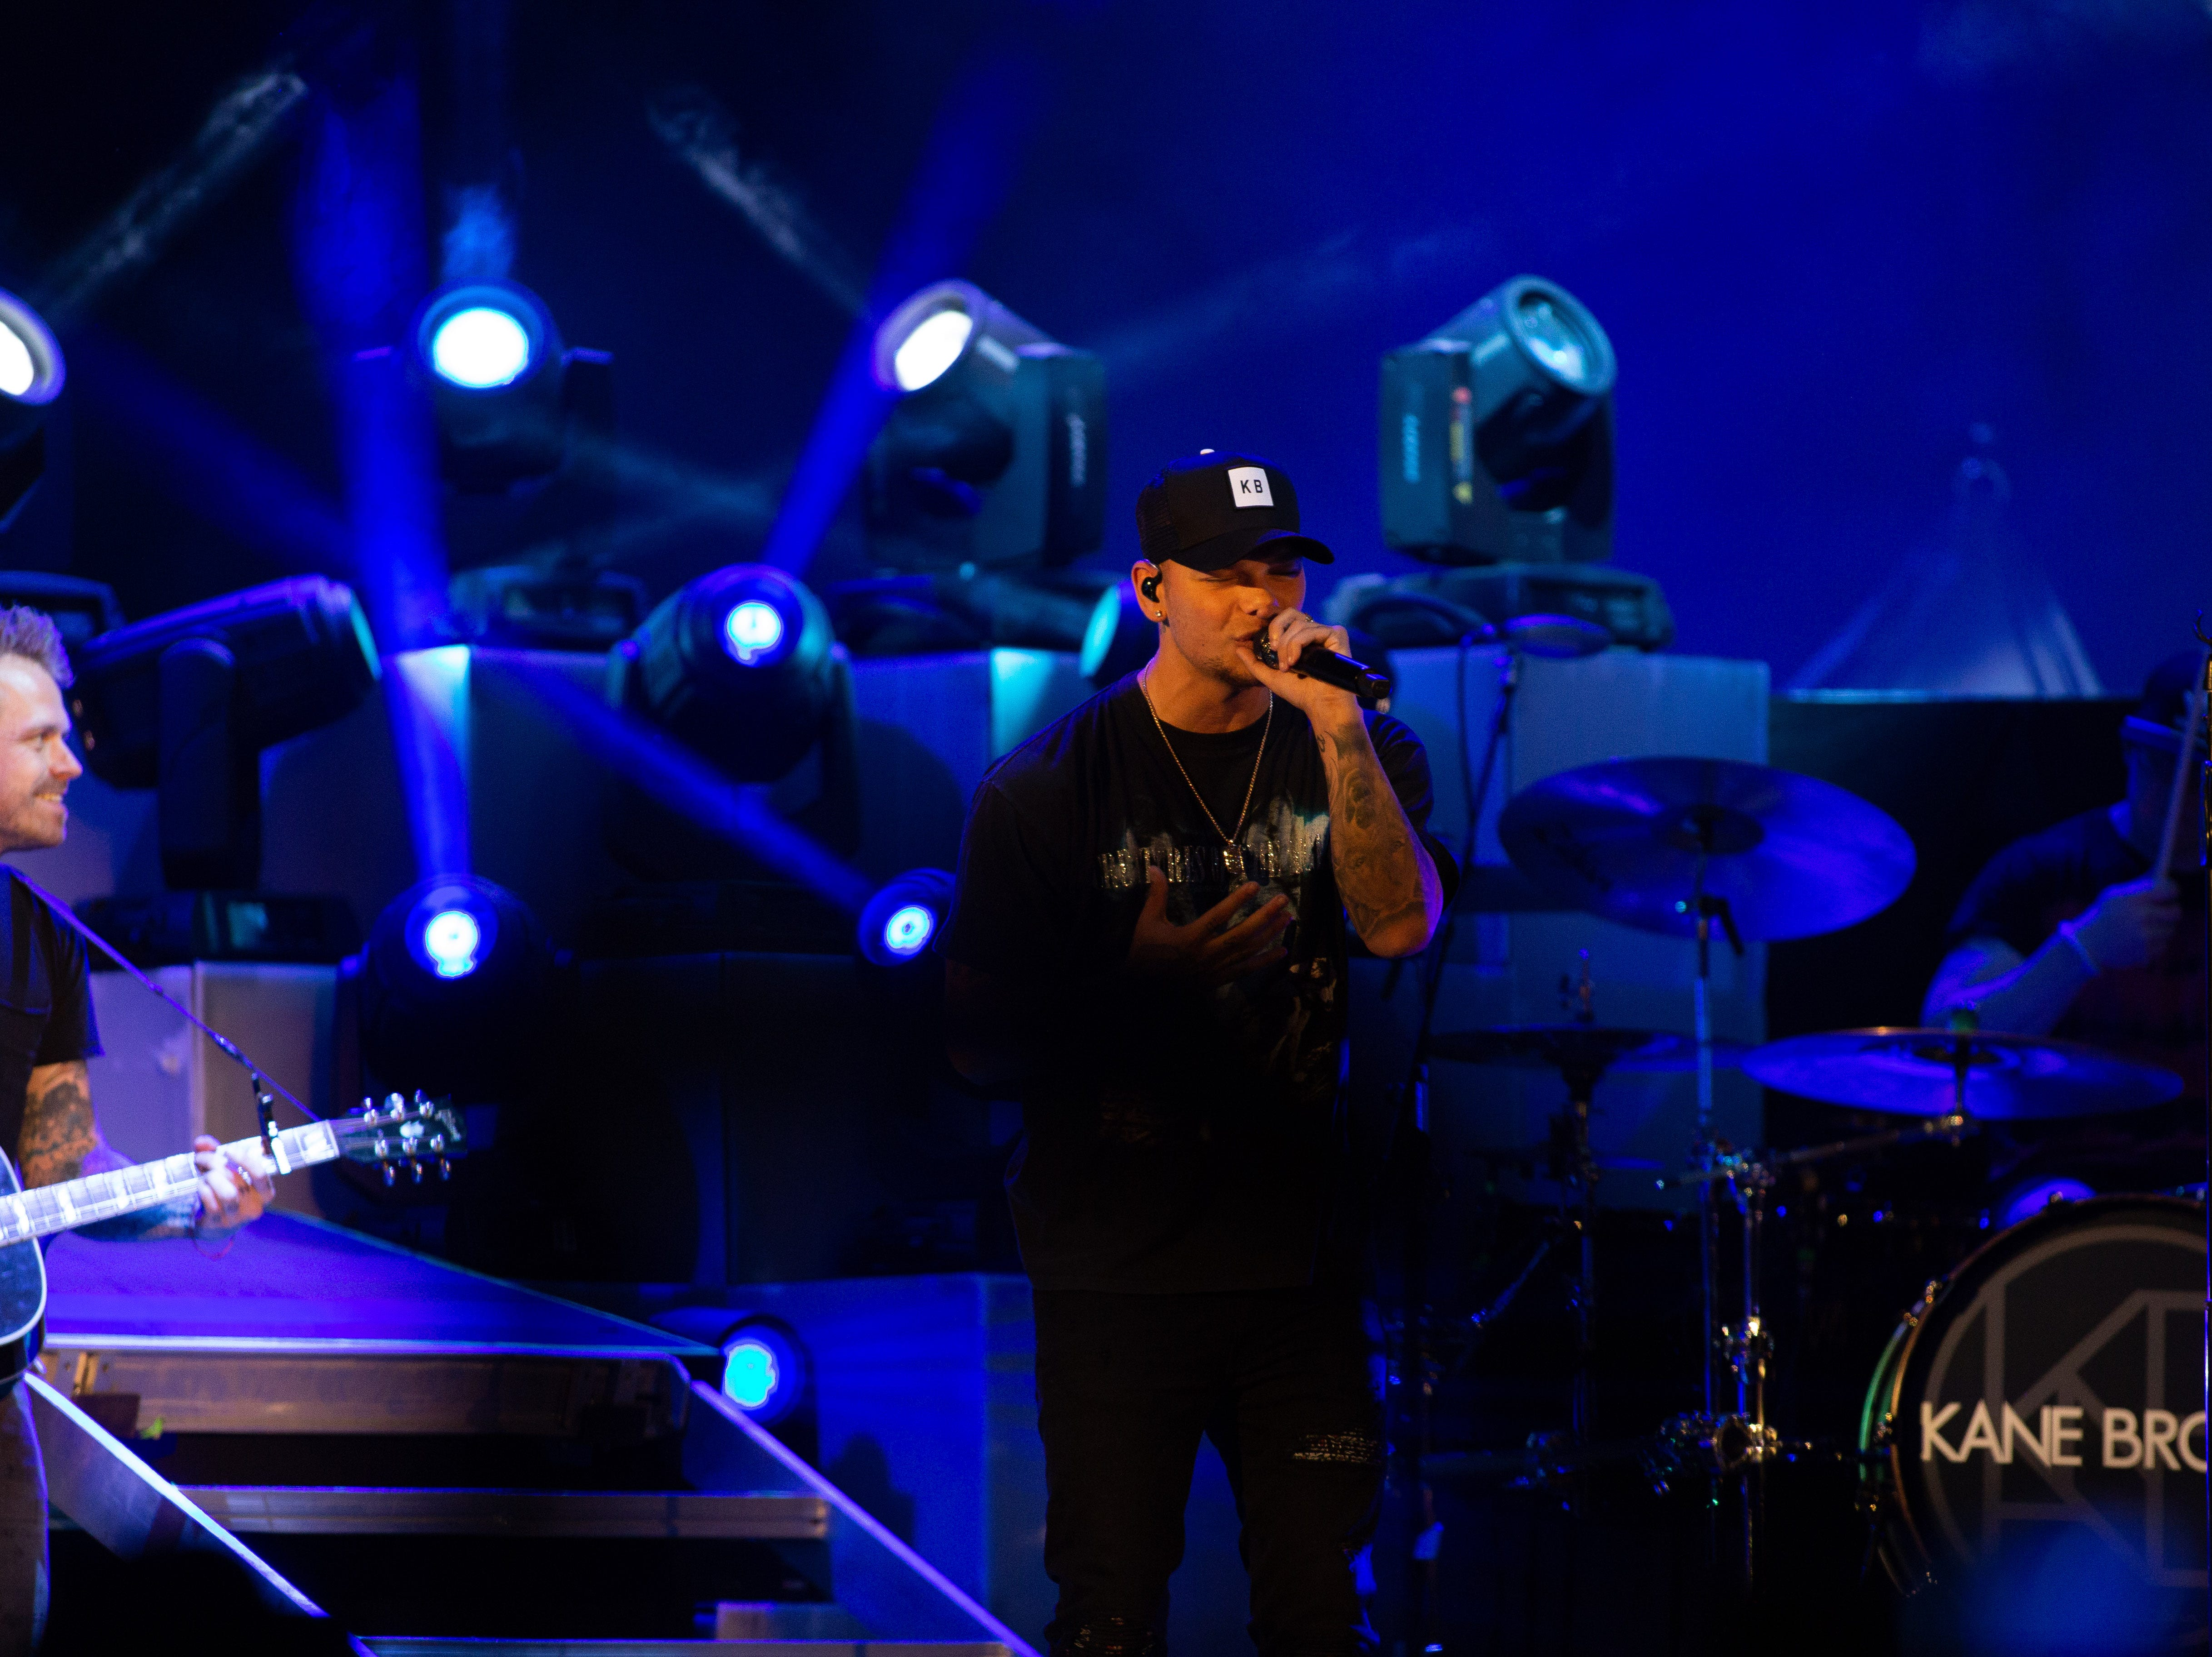 Kane Brown opens for Chris Young at a concert held at the Pan Am Center in Las Cruces on Thursday, Sept. 13, 2018.